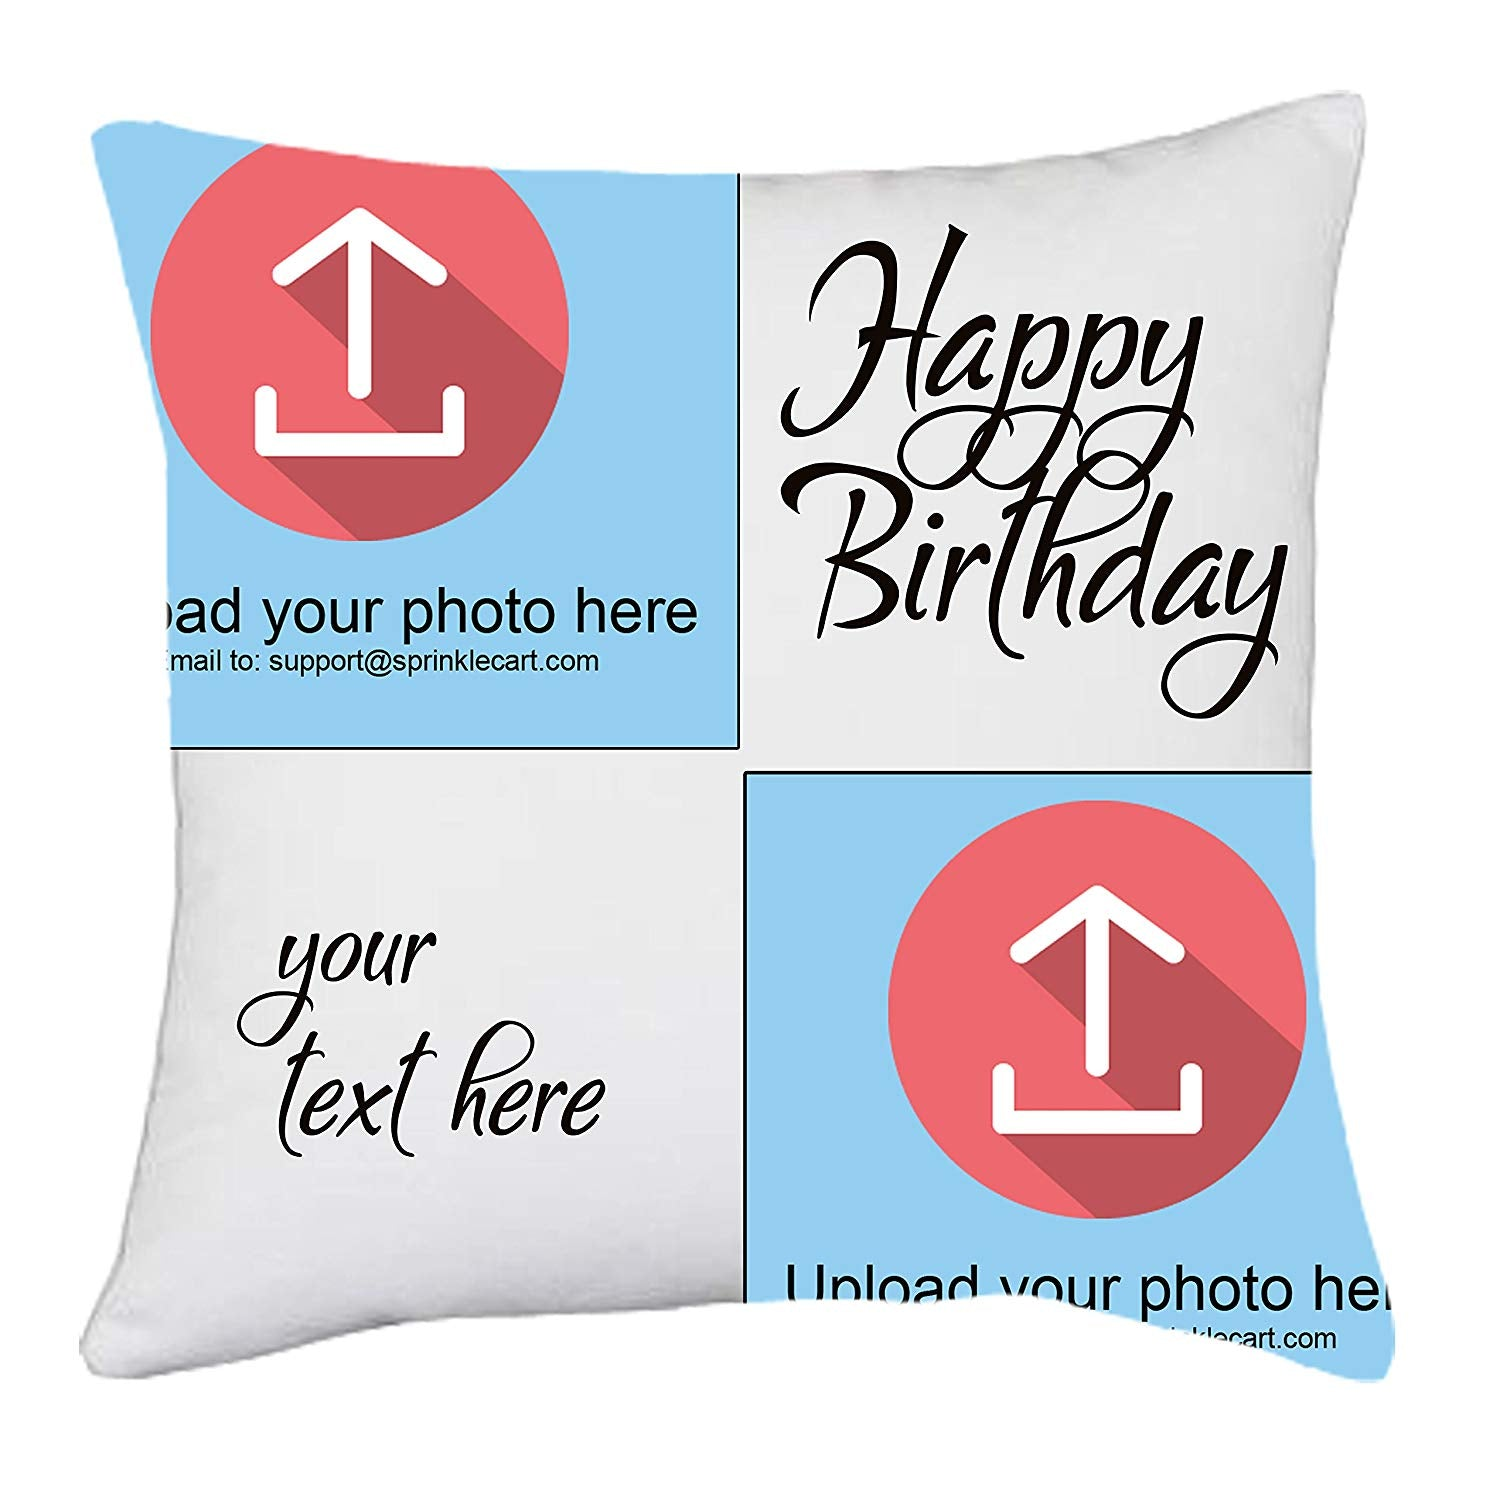 15″ x 15″ Inches Happy Birthday Gift Cushions with Fully Personalized Photo and Text by Sprinklecart